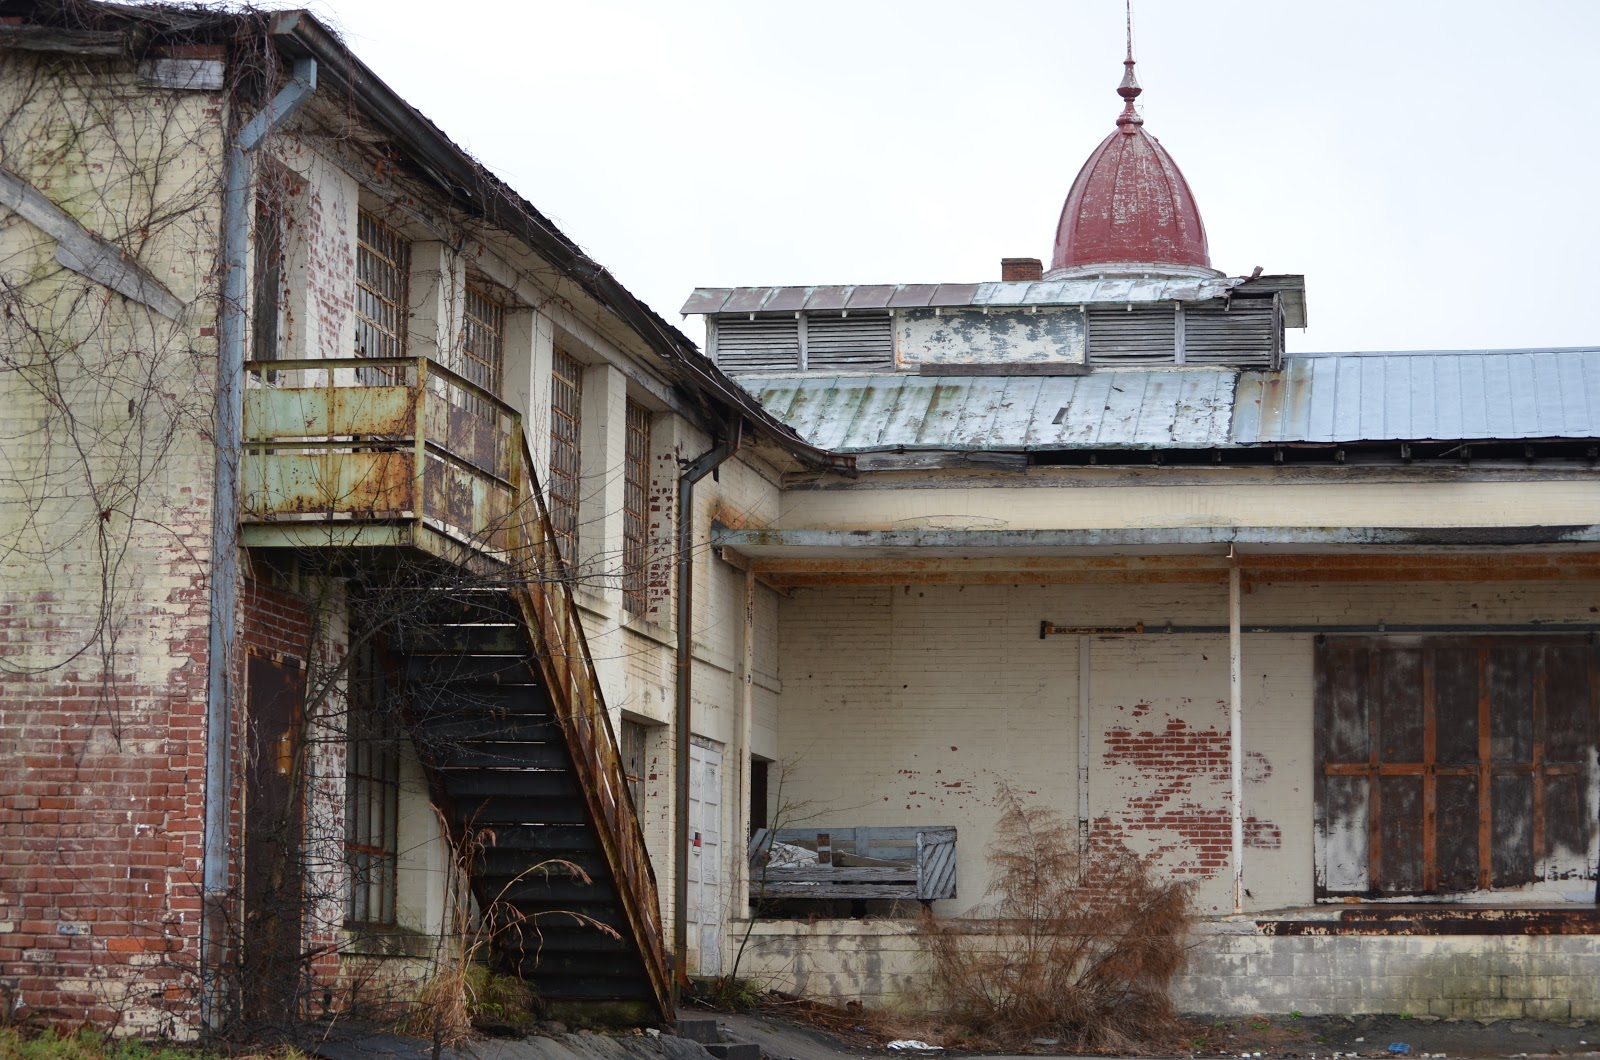 it makes you wonder how so many could end up at this lunatic asylum and if so many were here then where are they today